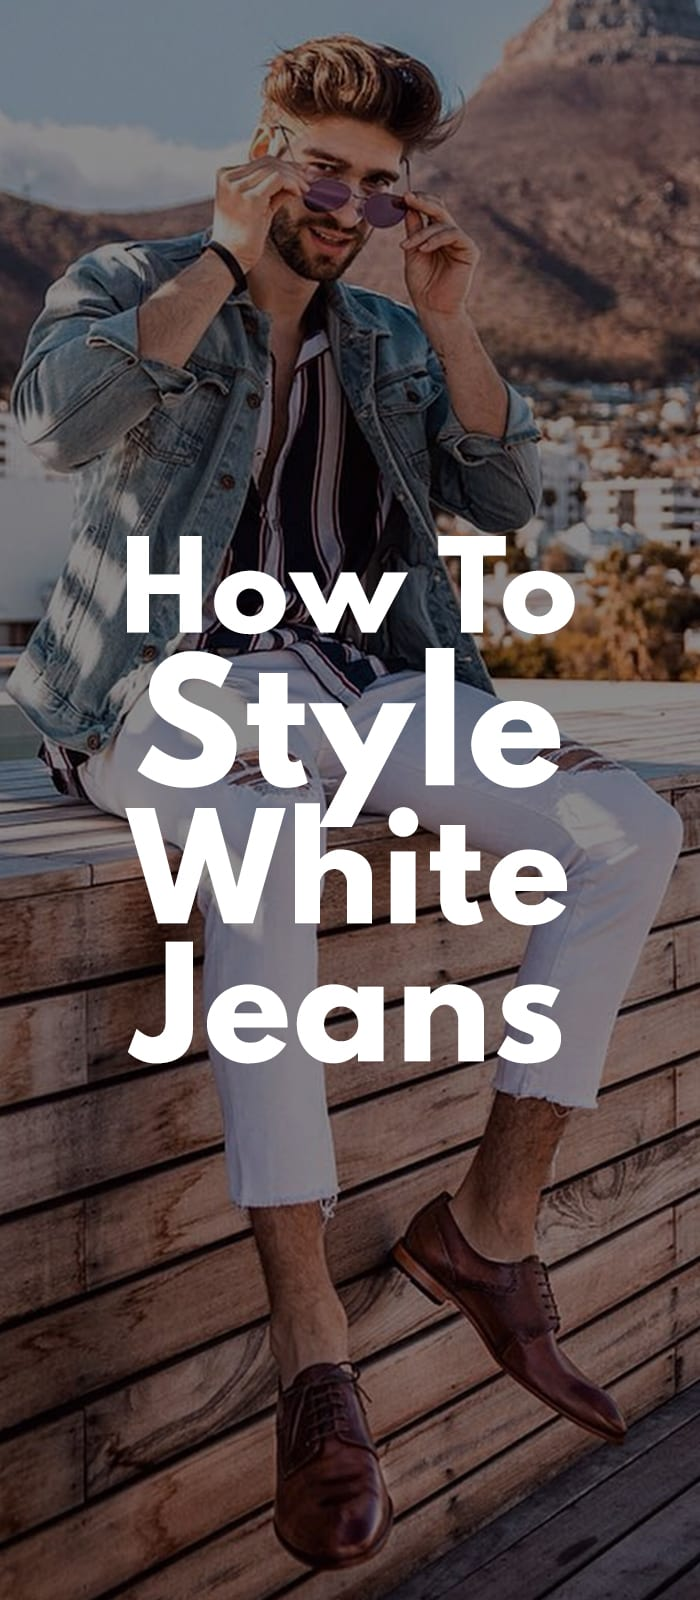 How To Style White Jeans.